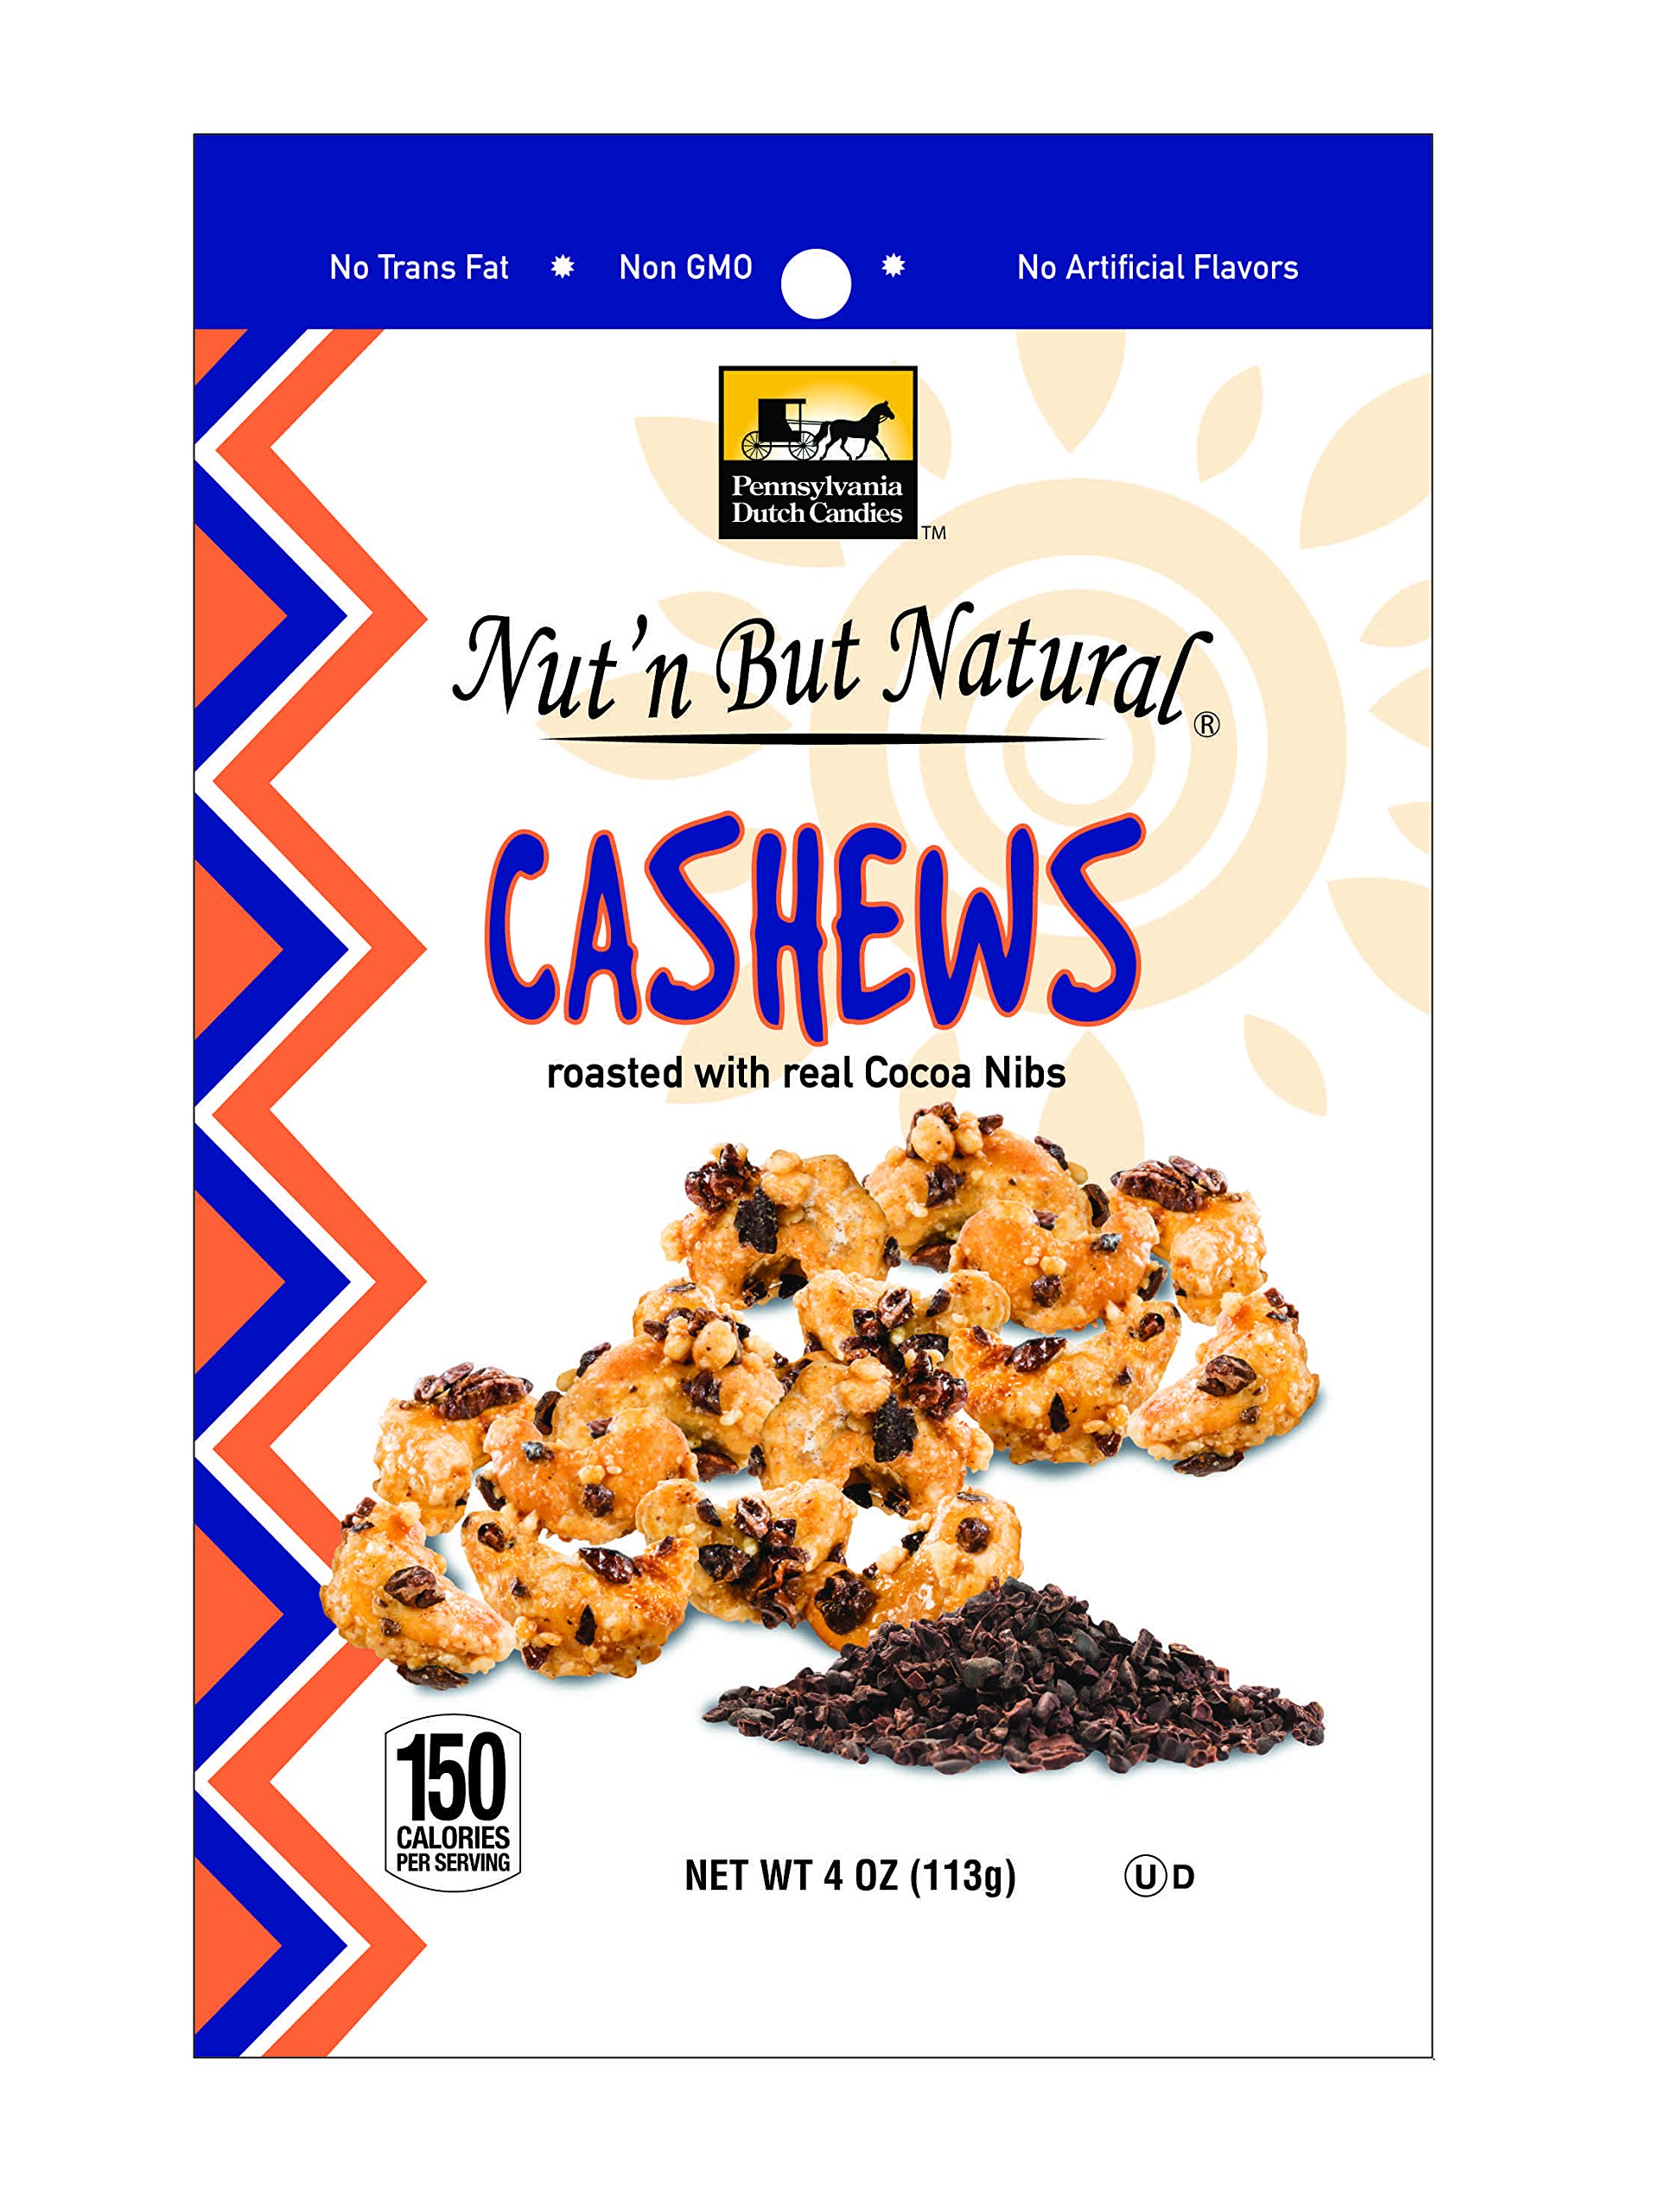 Nut'n But Natural Cashews, Roasted with real Cocoa Nibs, 2 Pack